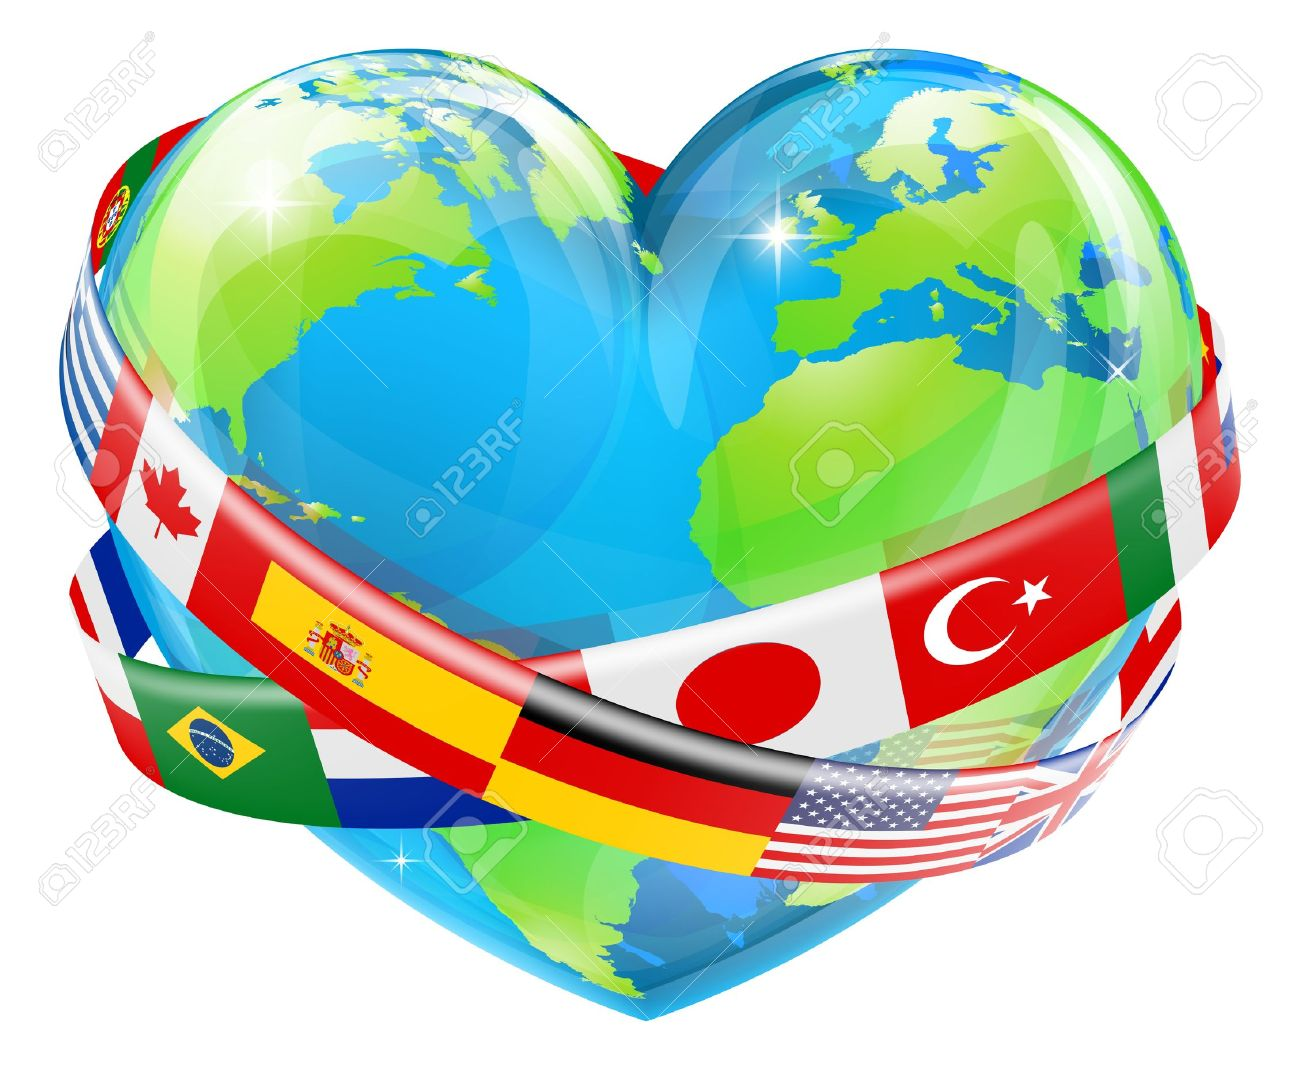 An Illustration Of A Heart Shaped World Earth Globe With The.